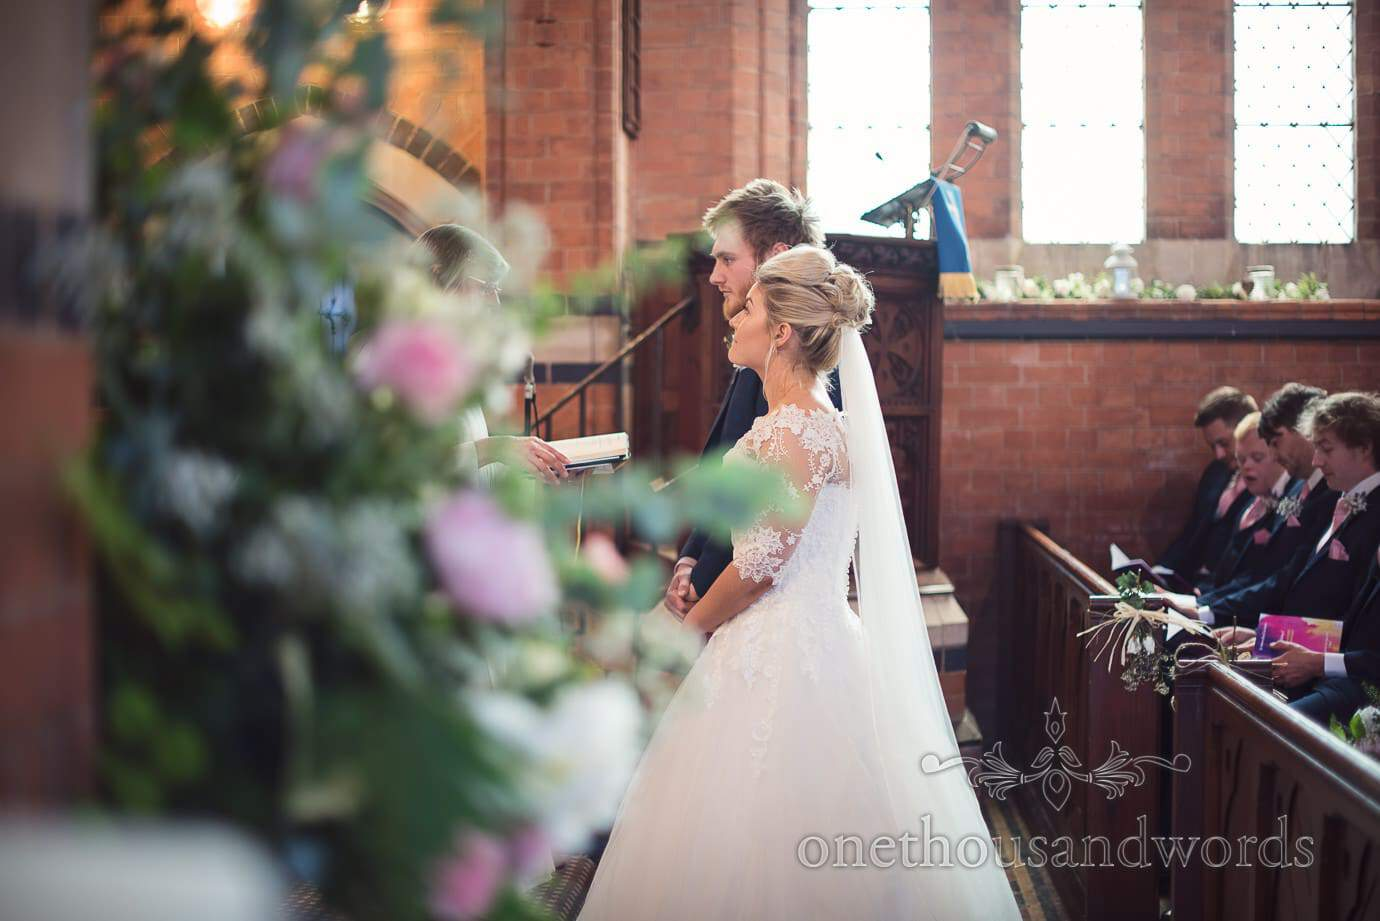 Bride and groom photographed through wedding flowers in church